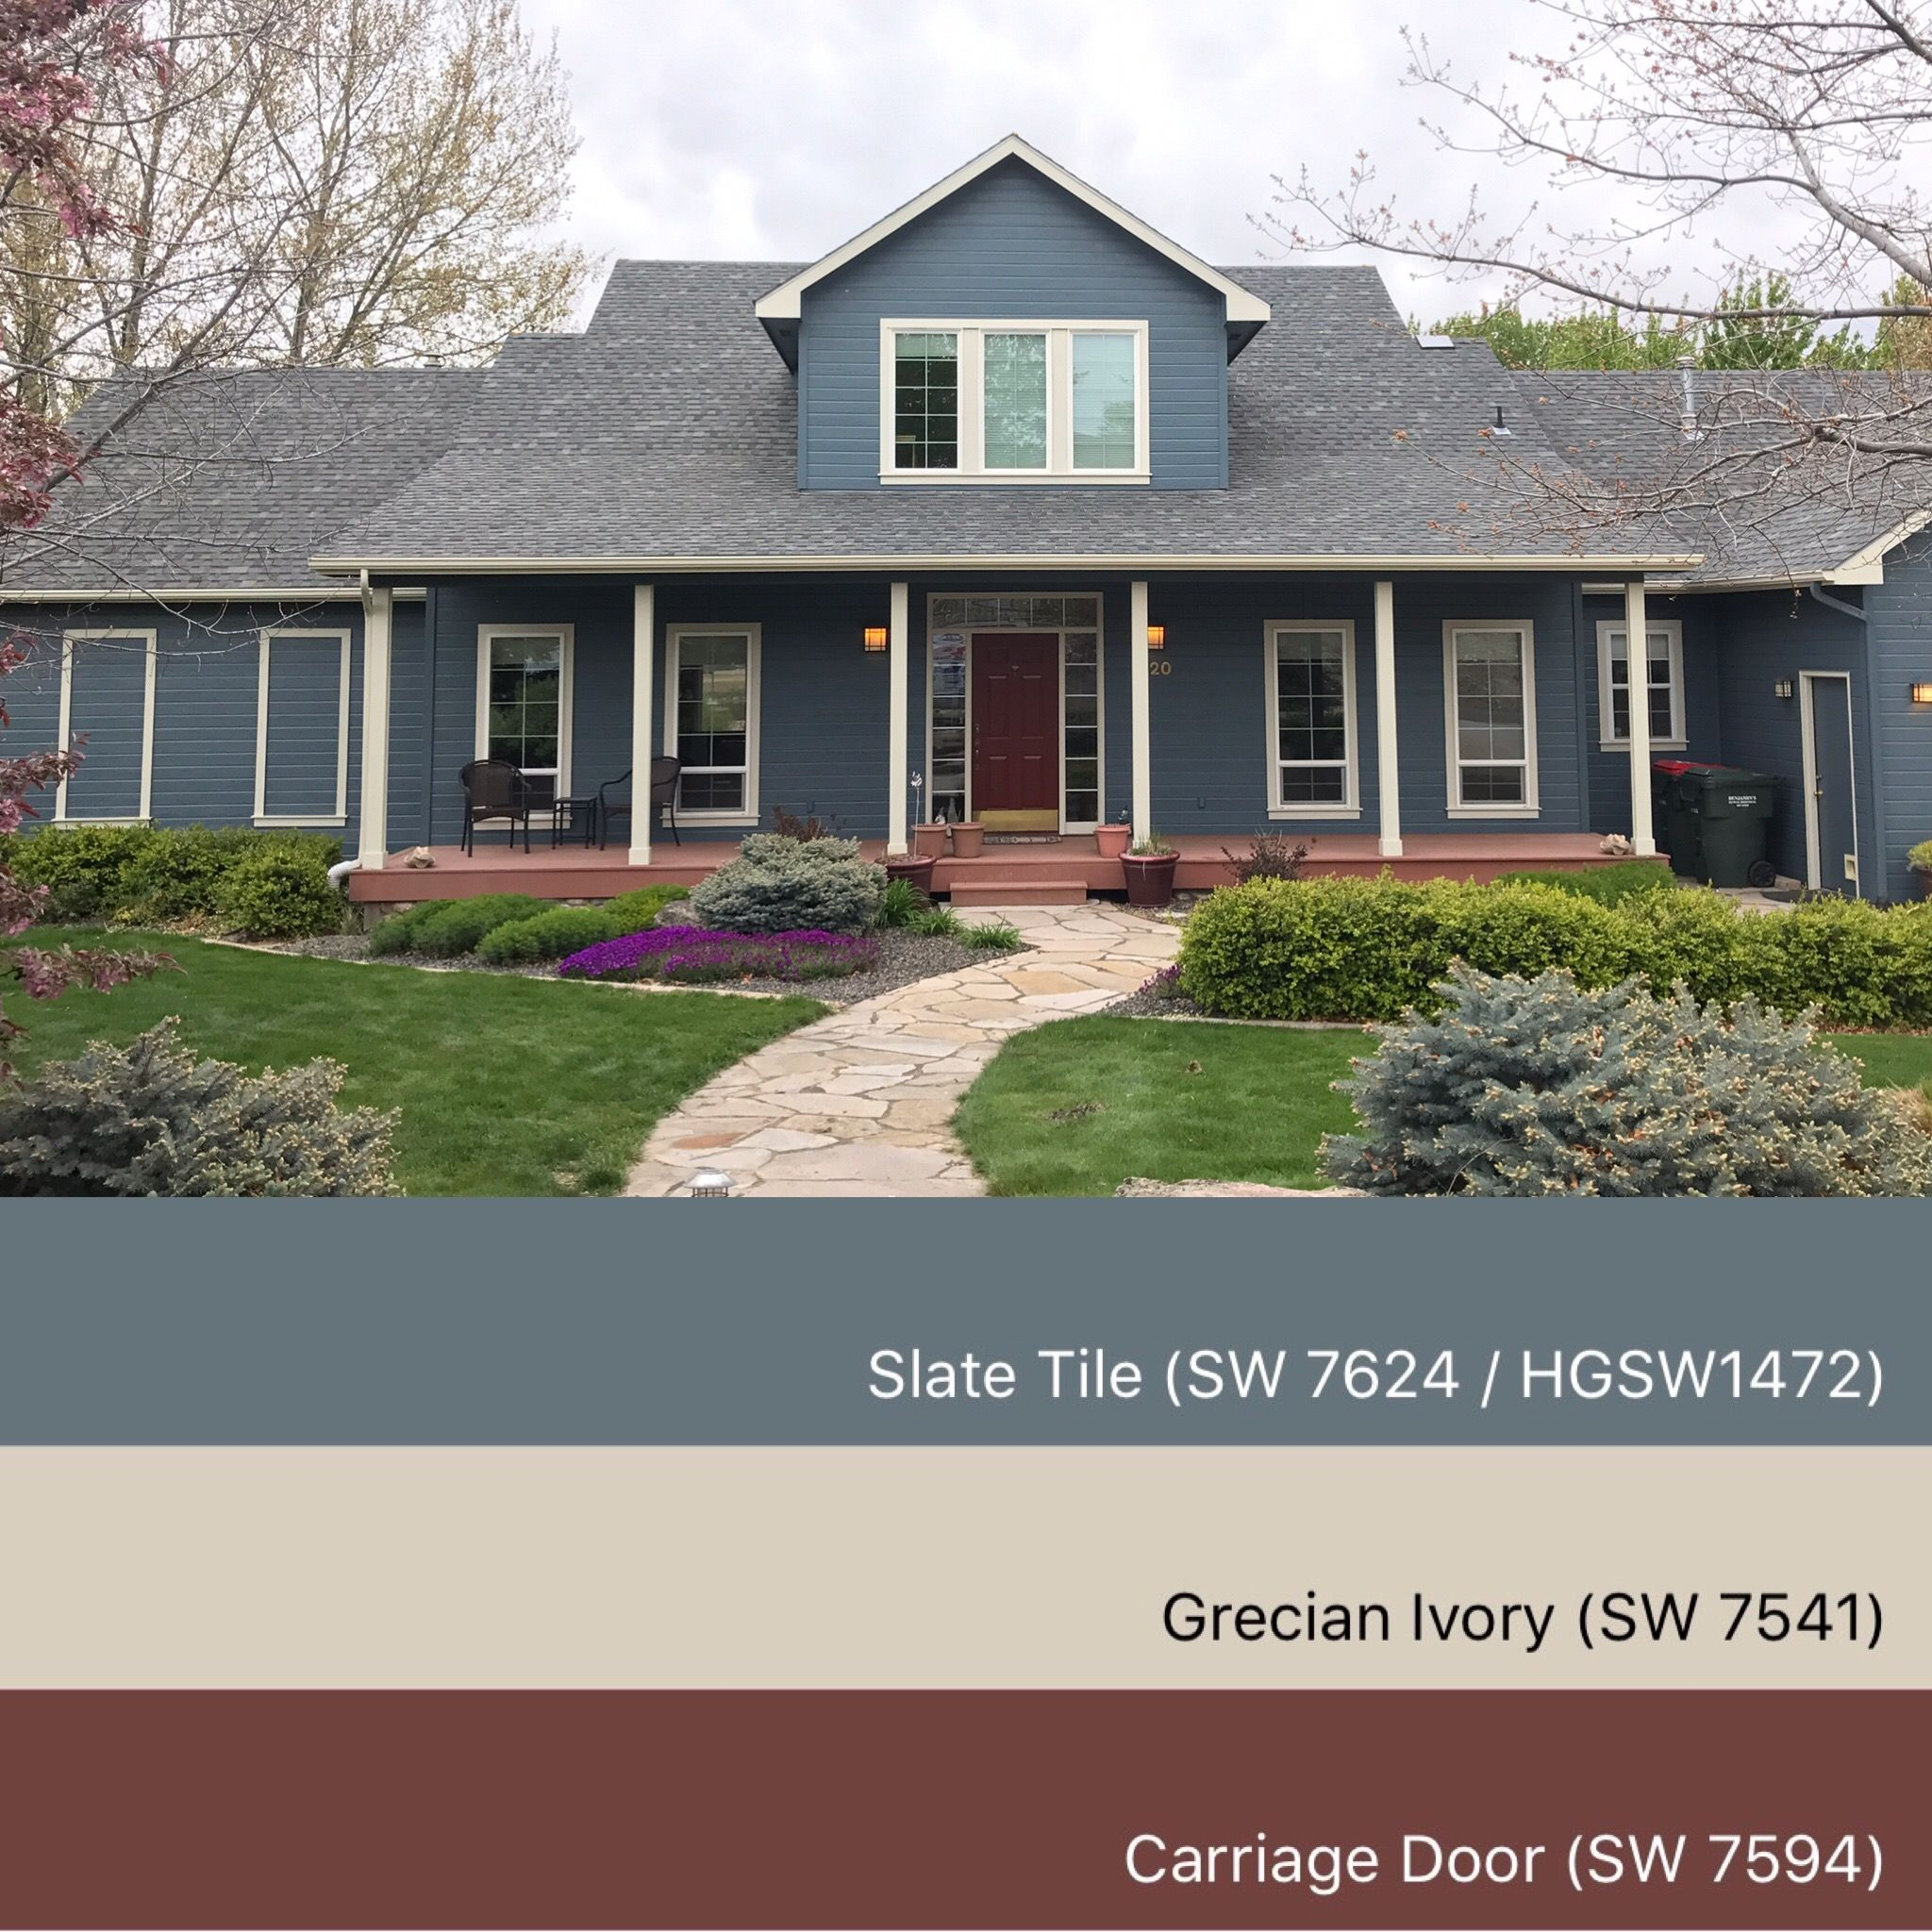 Sherwin Williams Paint Colors Slate Tile 1472 Greciean Ivory